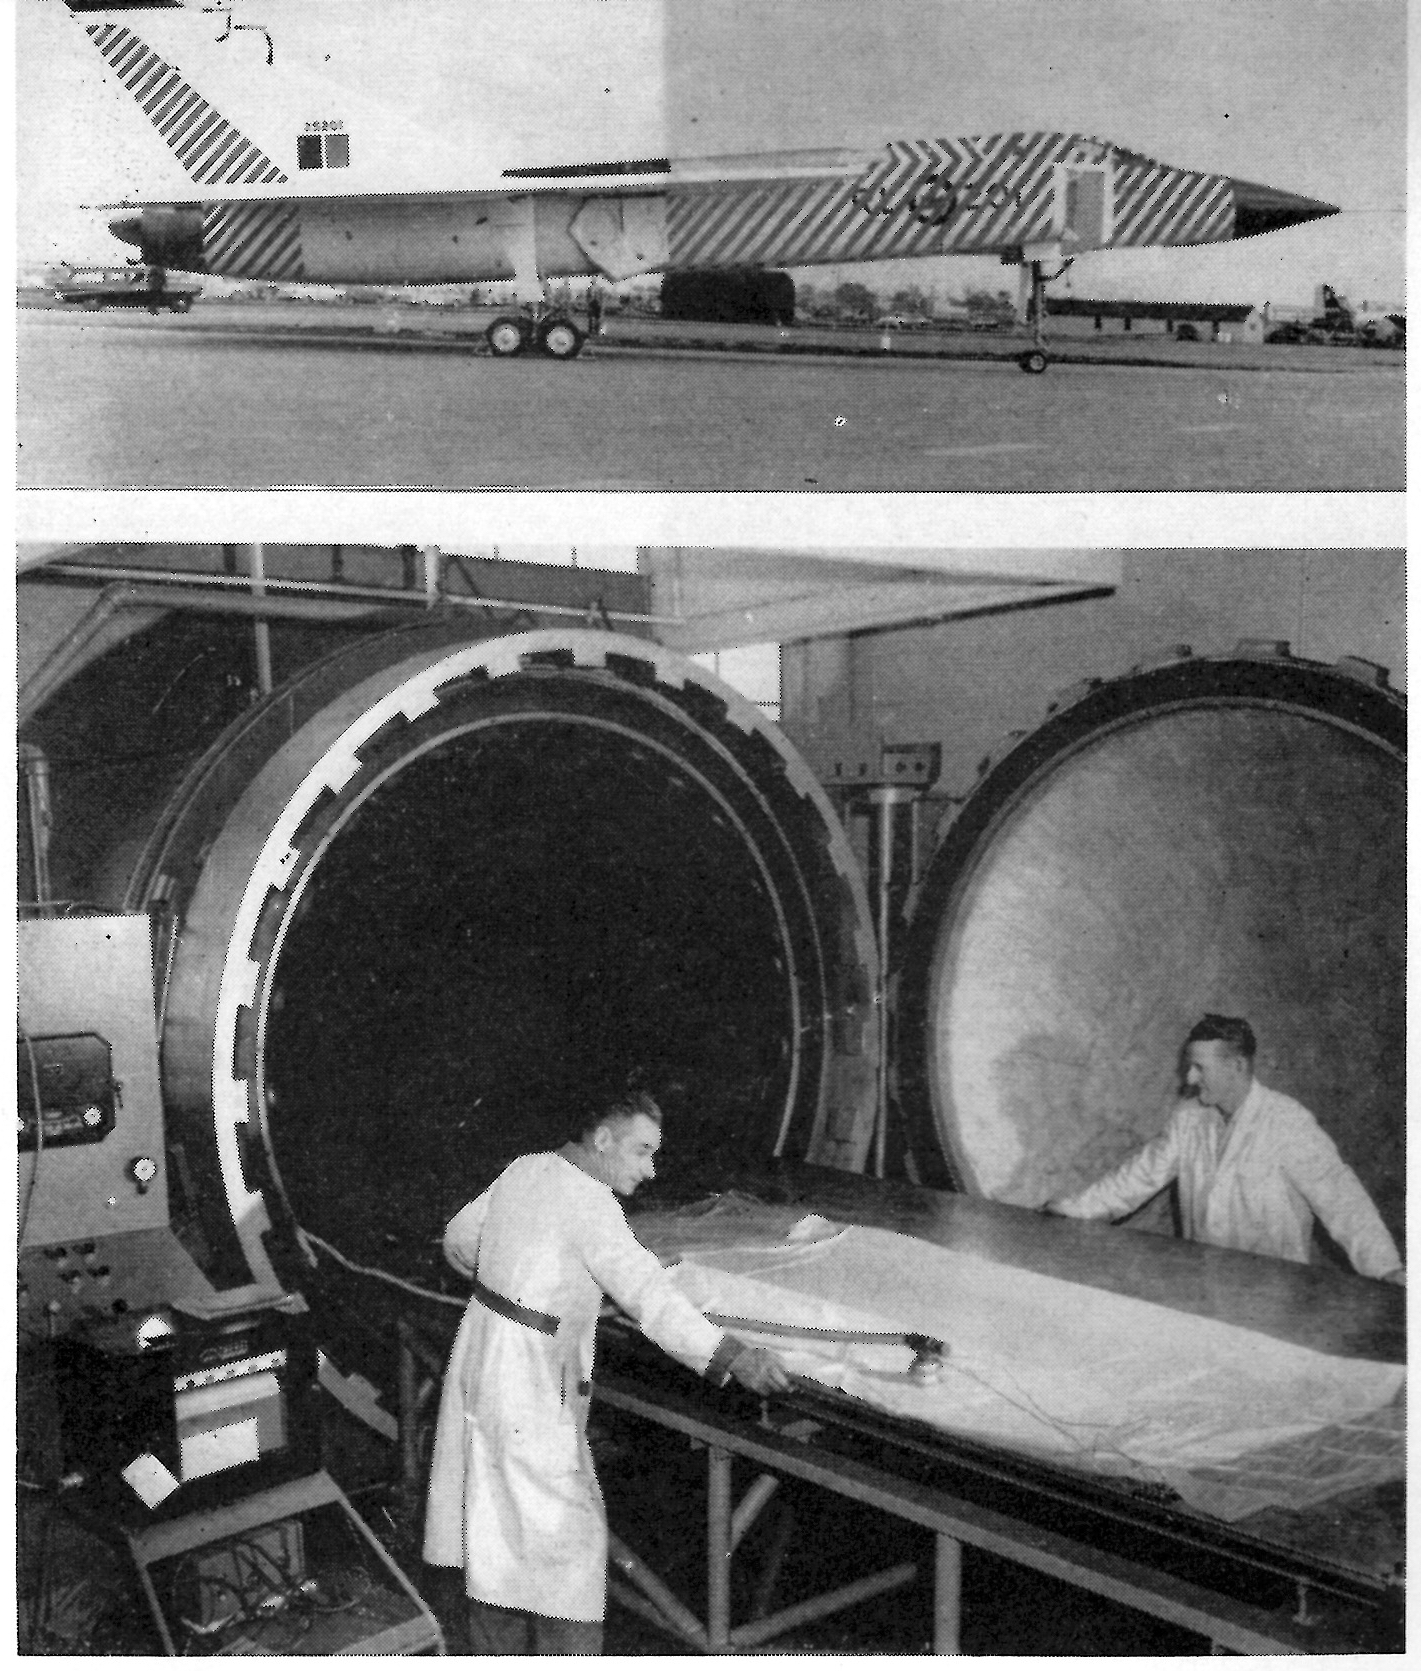 """From """"Magnesium –New Auto Claving Method Used to Form Canadian 'Arrow"""" Fighter Skin,"""" Light Metal Age, February 1958. (©1958 Light Metal Age)"""